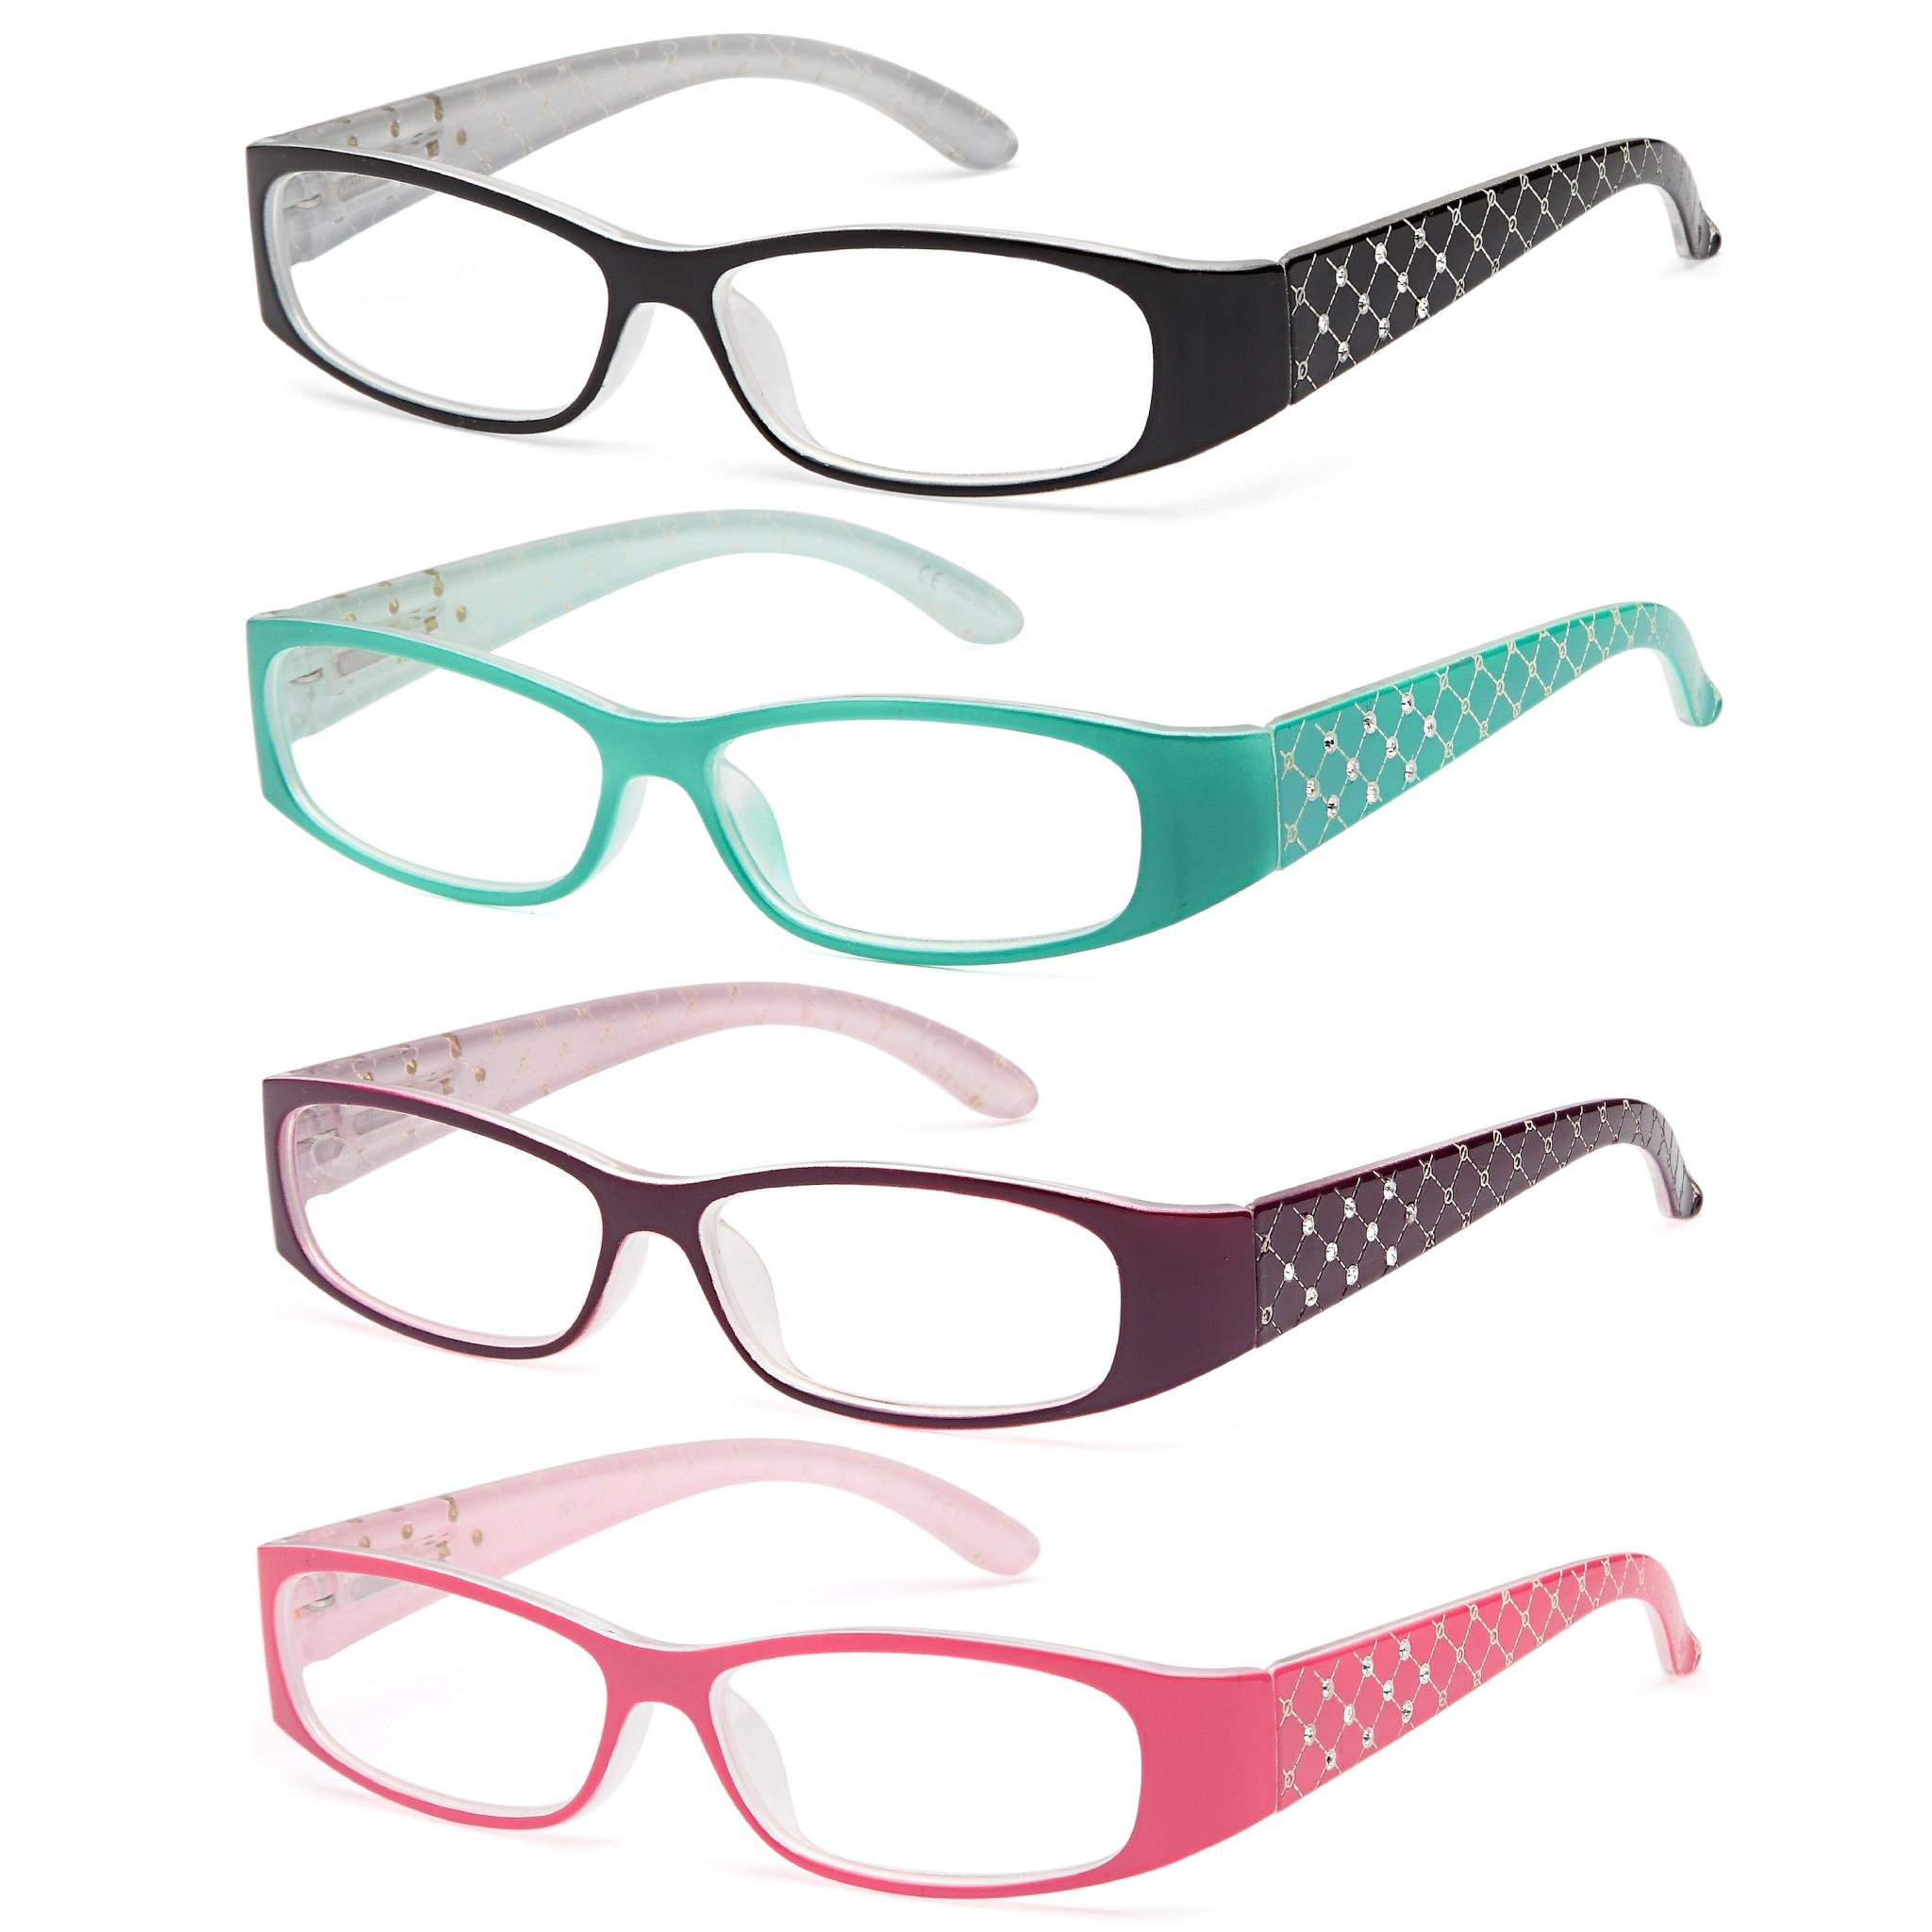 ALTEC VISION 4 Pack Cute Readers Spring Loaded Hinge Reading Glasses - 1.50x by ALTEC VISION